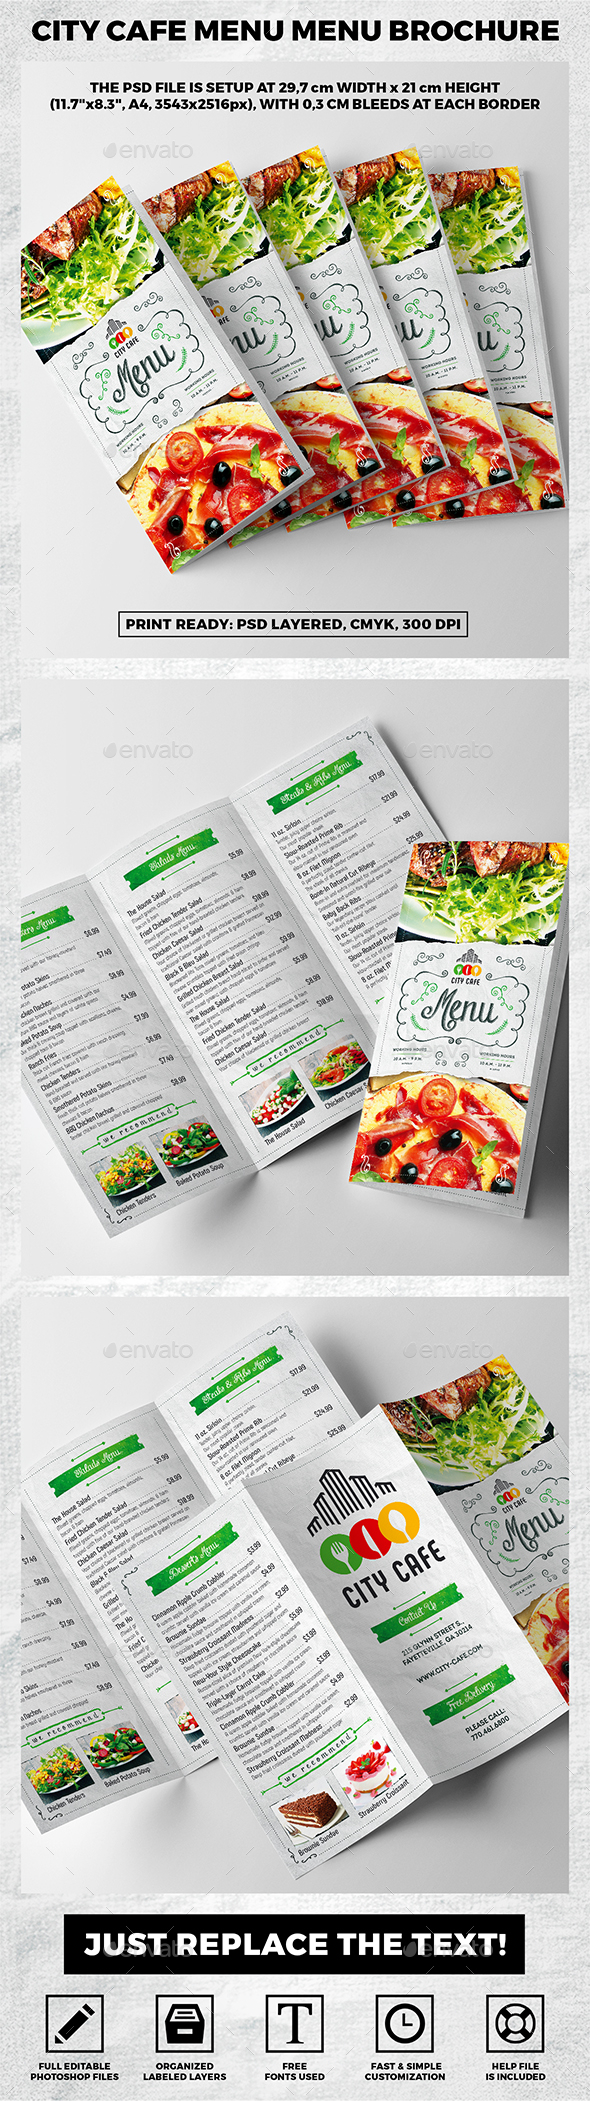 Trifold A4 City Cafe Menu Template vol.1 - Food Menus Print Templates